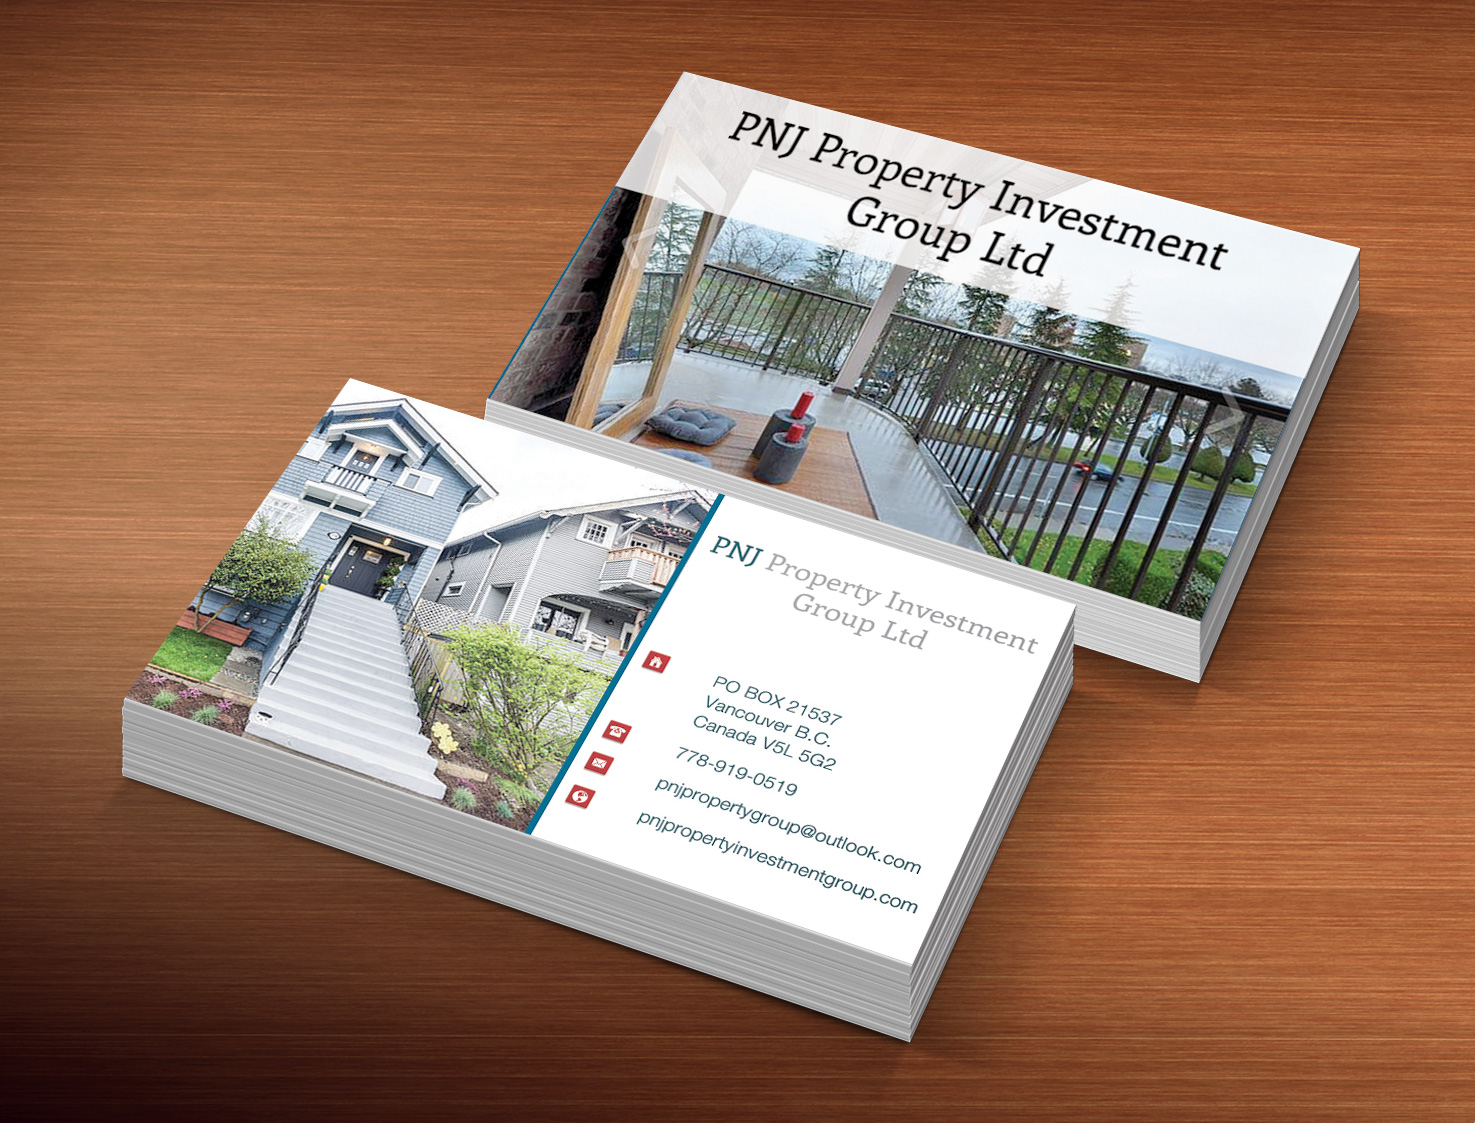 Investment business card design for pnj property investment group business card design by creation lanka for pnj property investment group ltd design colourmoves